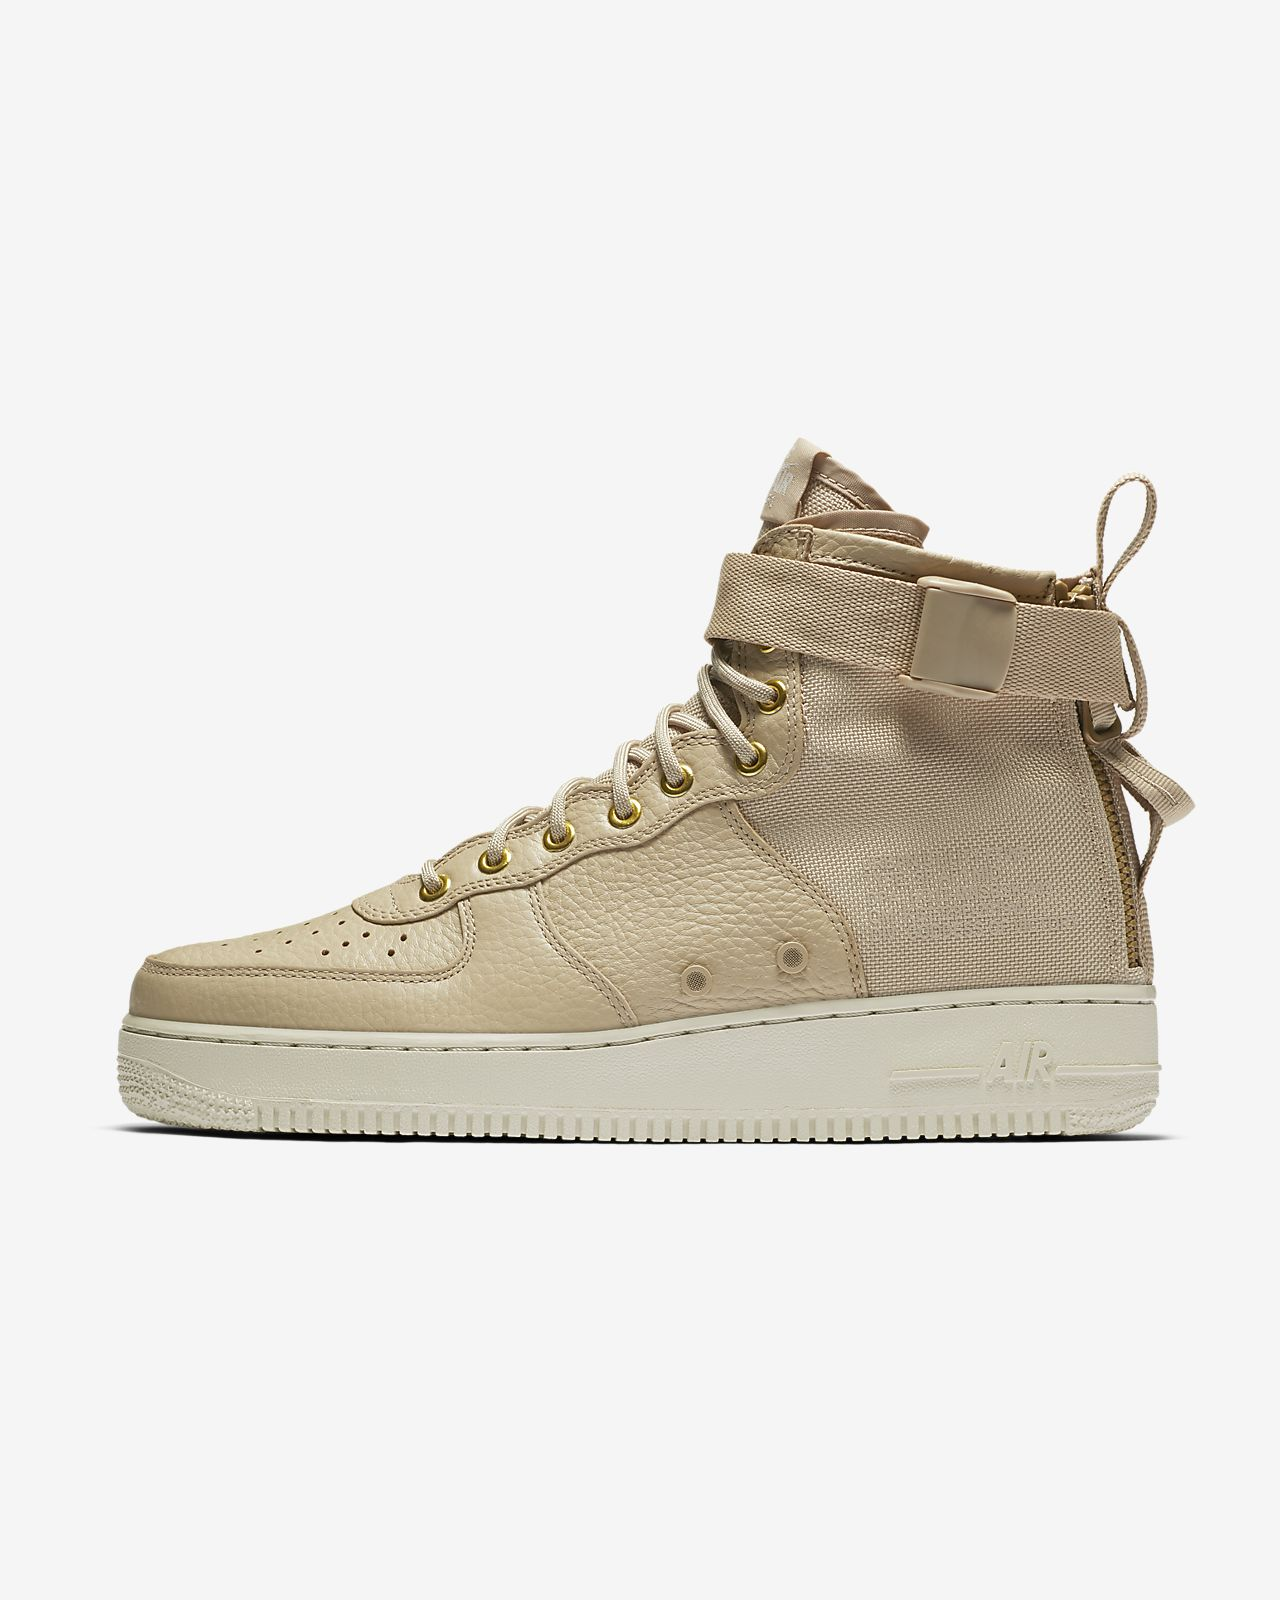 Nike Air Force 1 Mi Sac À Dos En Cuir Beige